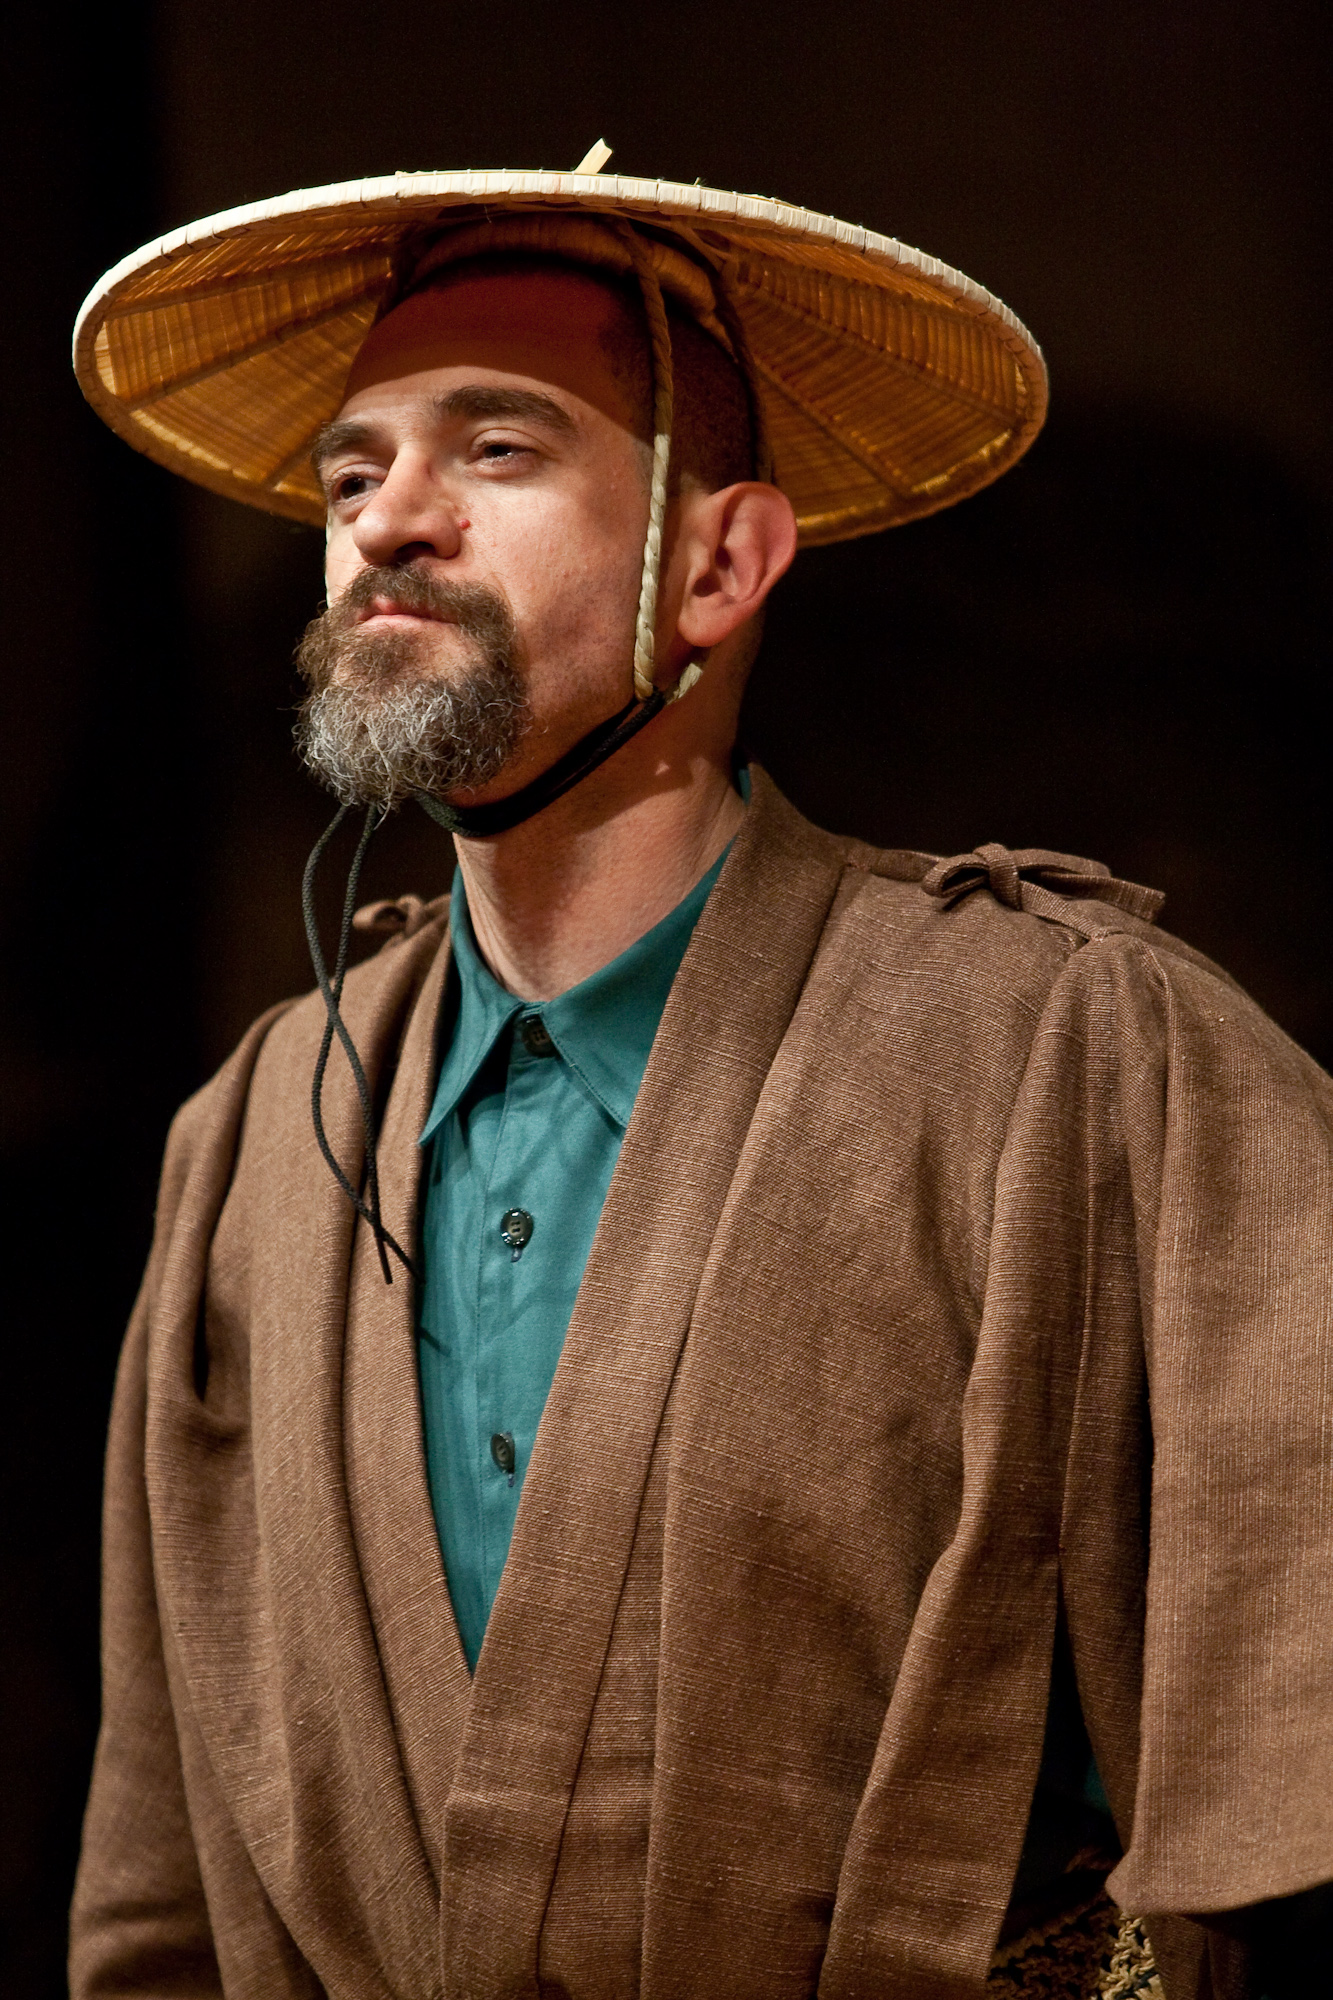 Lluis Valls - Performed the role of the Oyster Fisherman in Pagoda (2009, 2011)